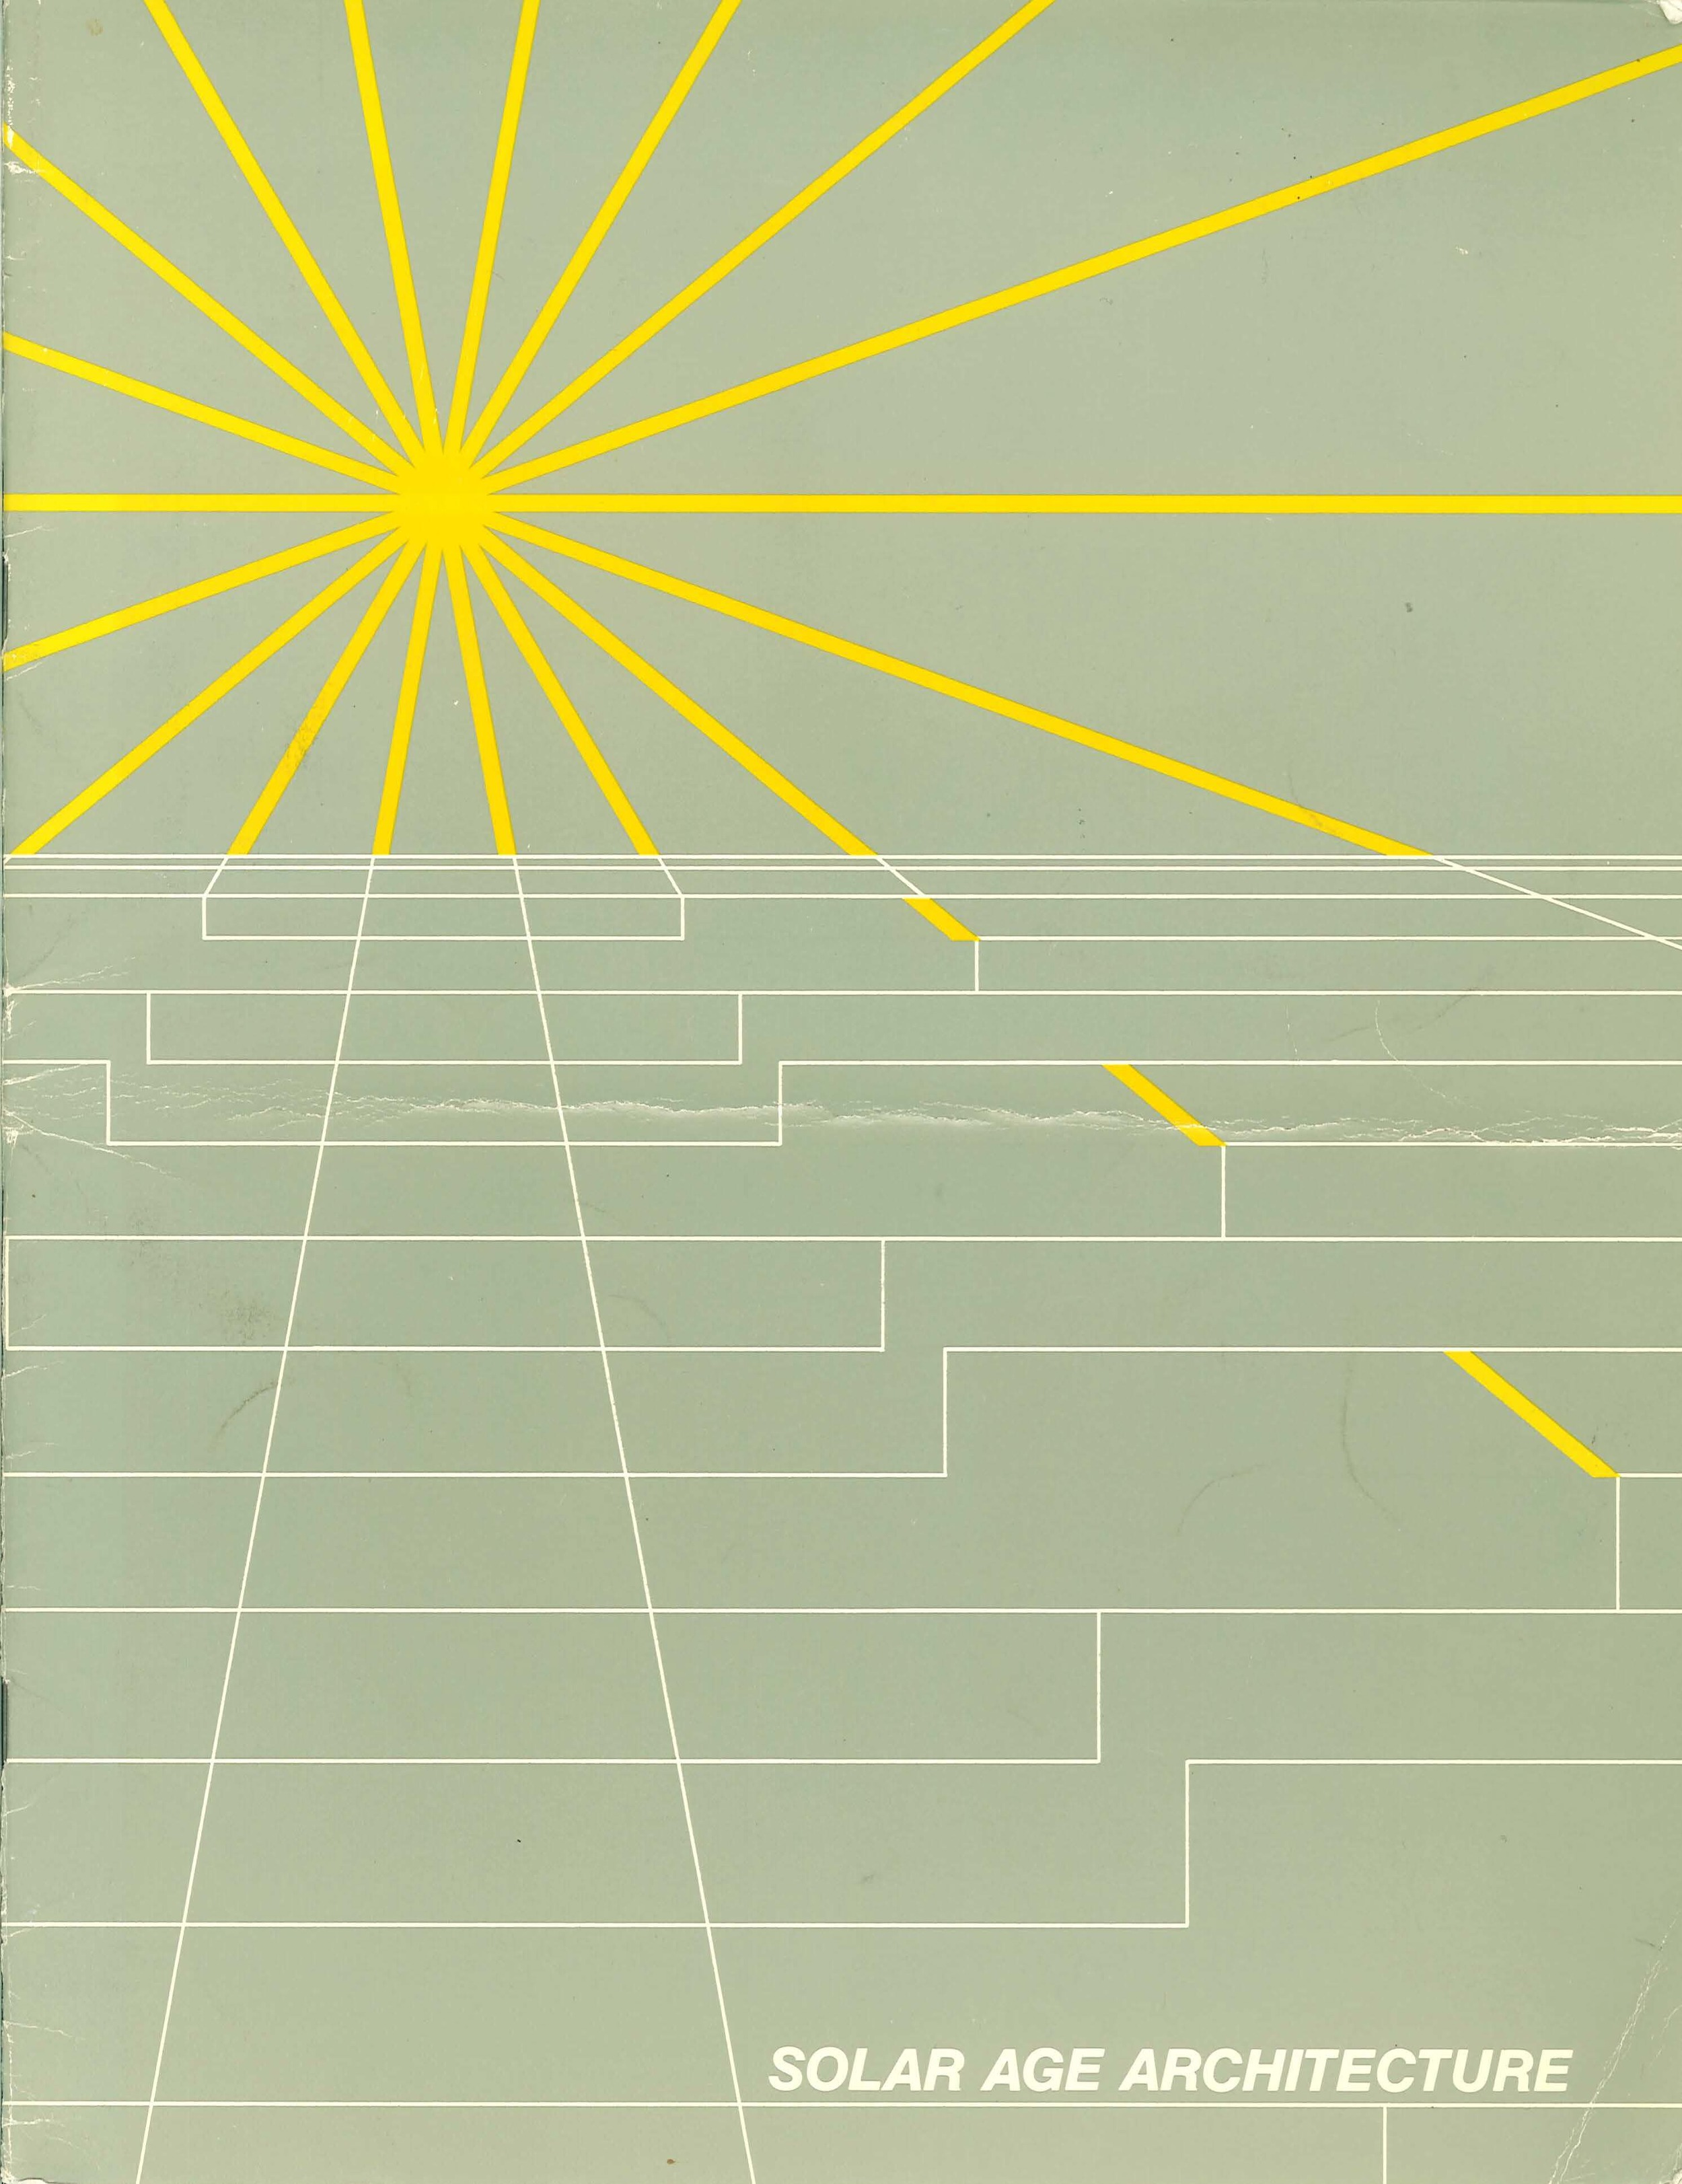 solar age architecture_1981_Page_1.jpg